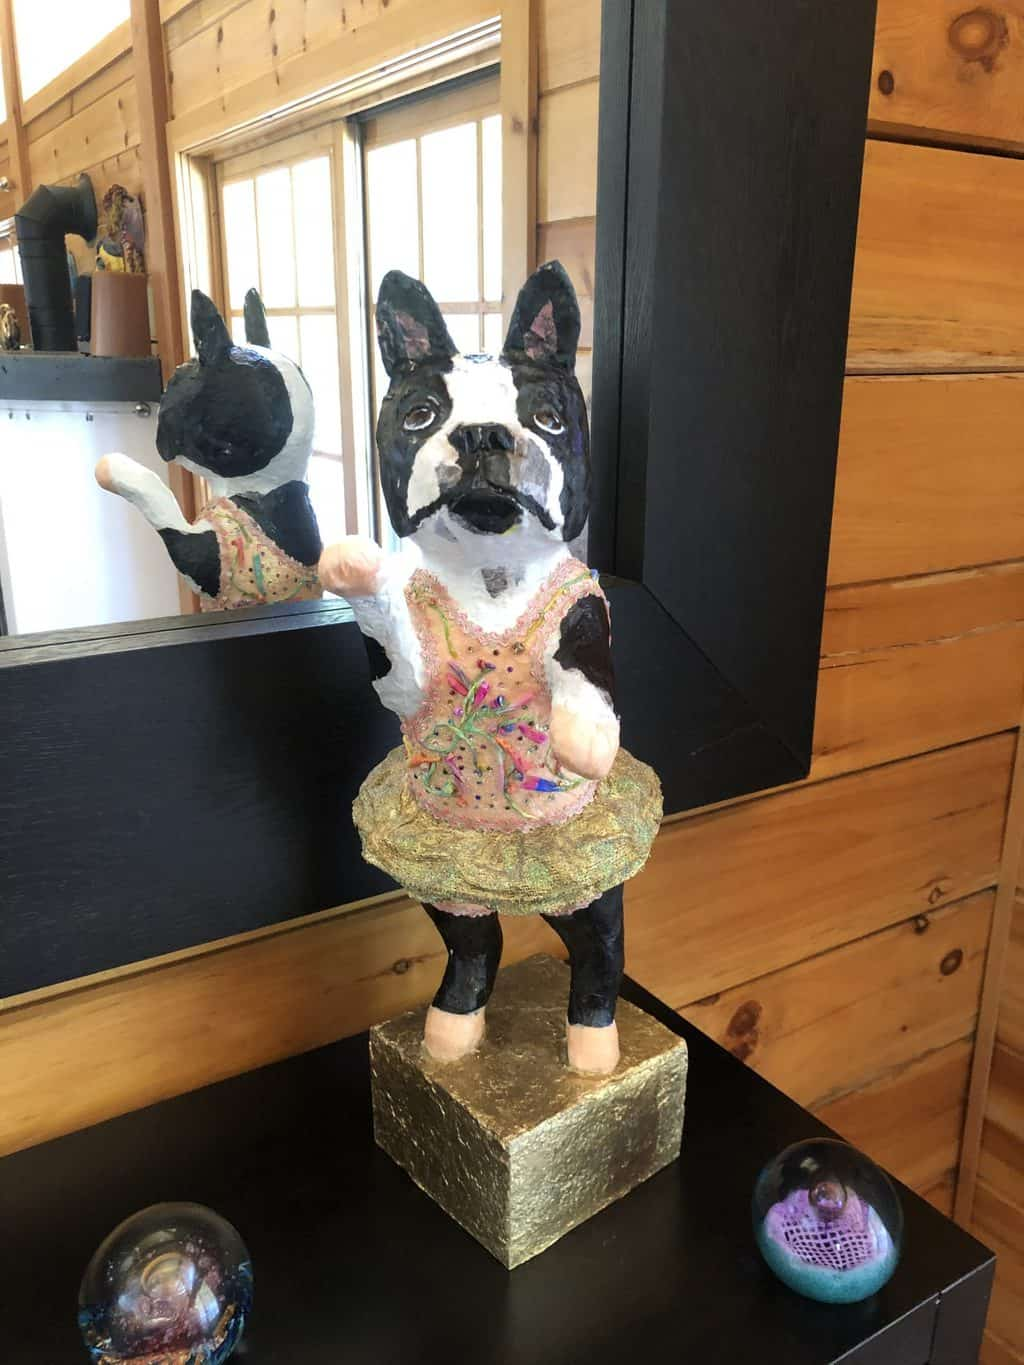 Paper mache boston terrier, with bling.